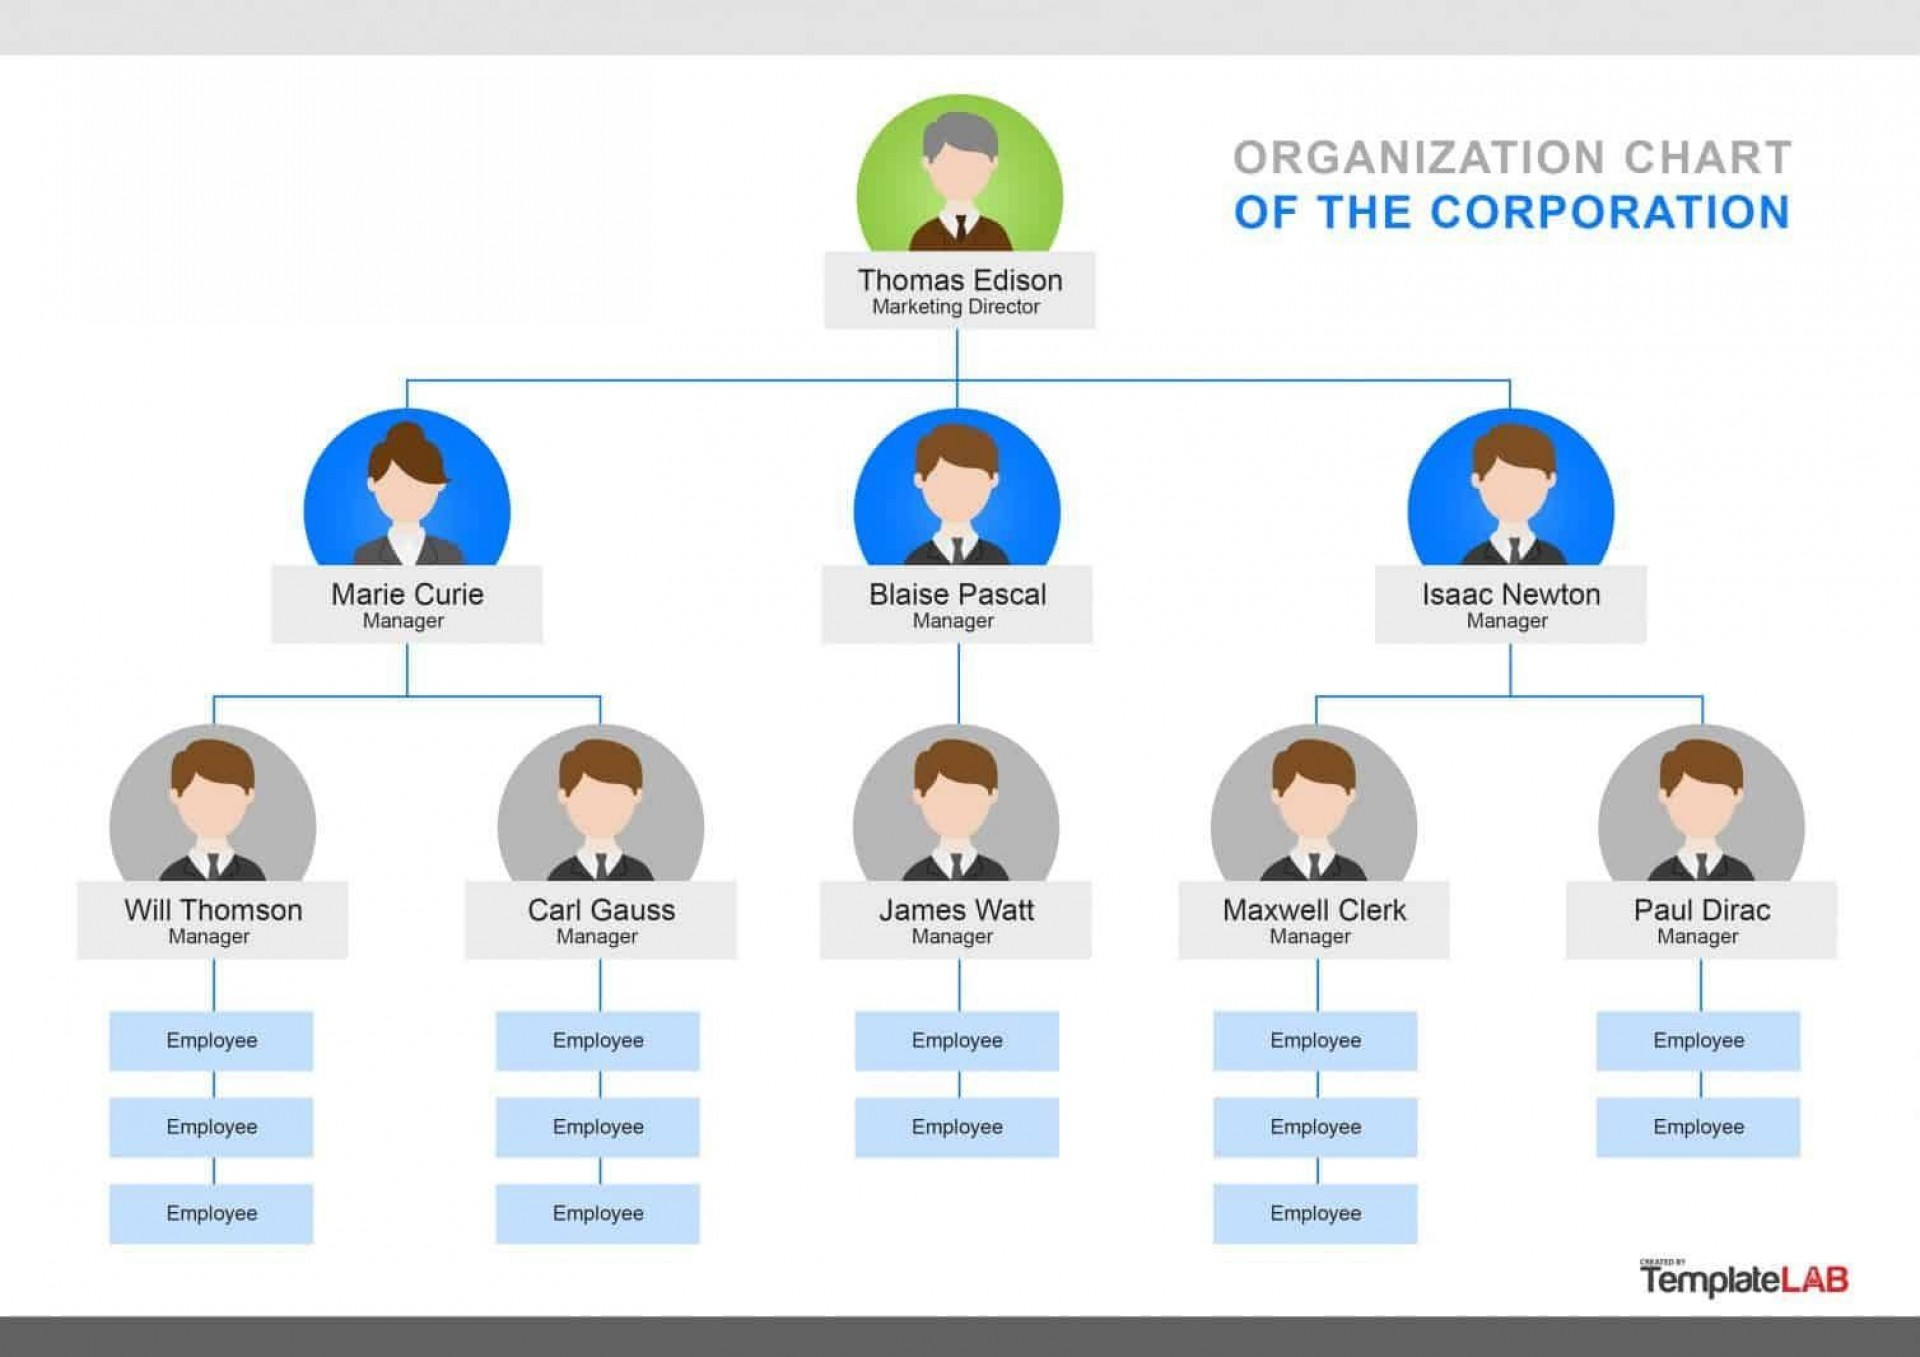 000 Formidable Microsoft Word Org Chart Template High Definition  Download Organization1920